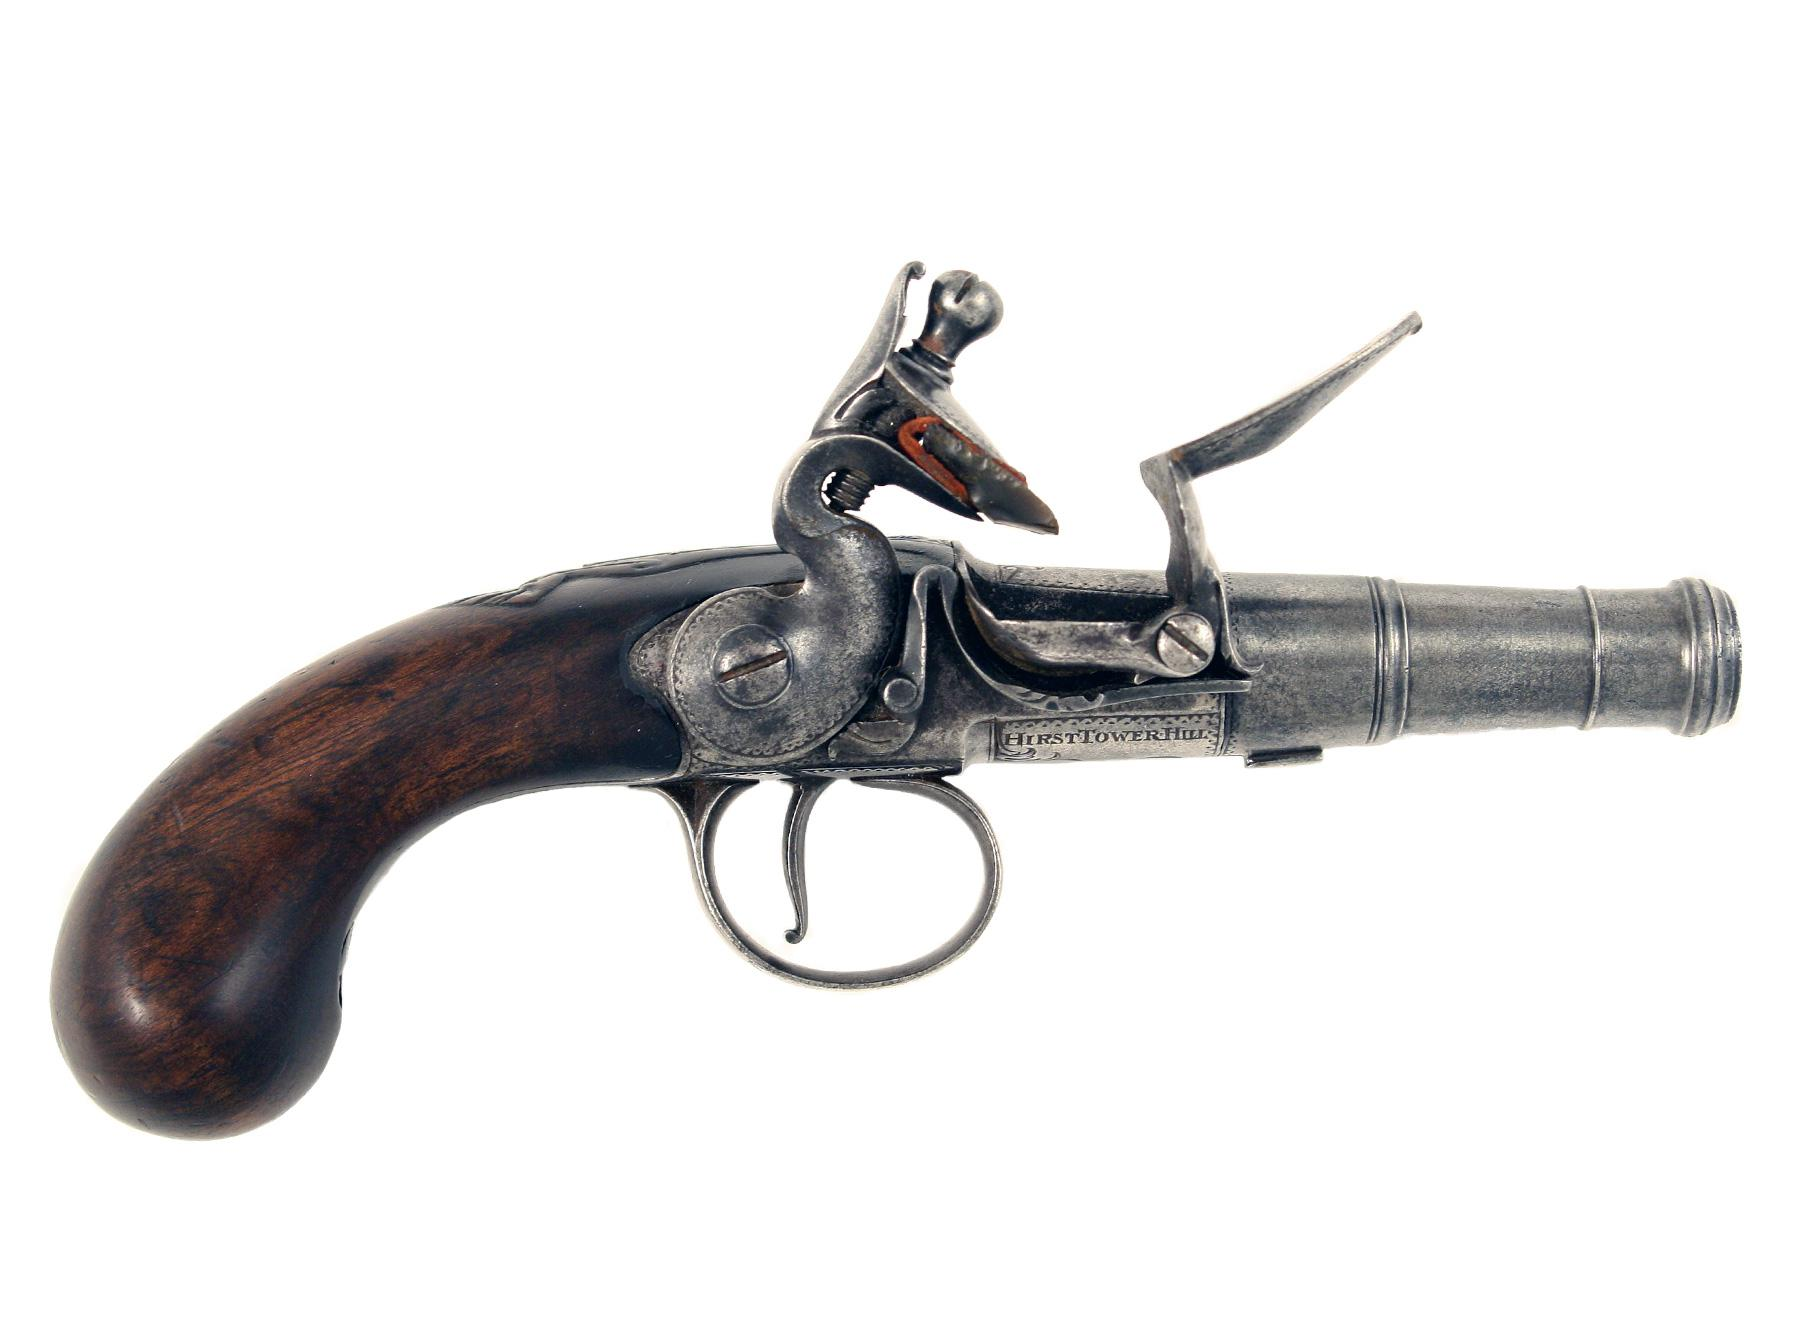 A Queen Anne Pocket Pistol by Hirst.